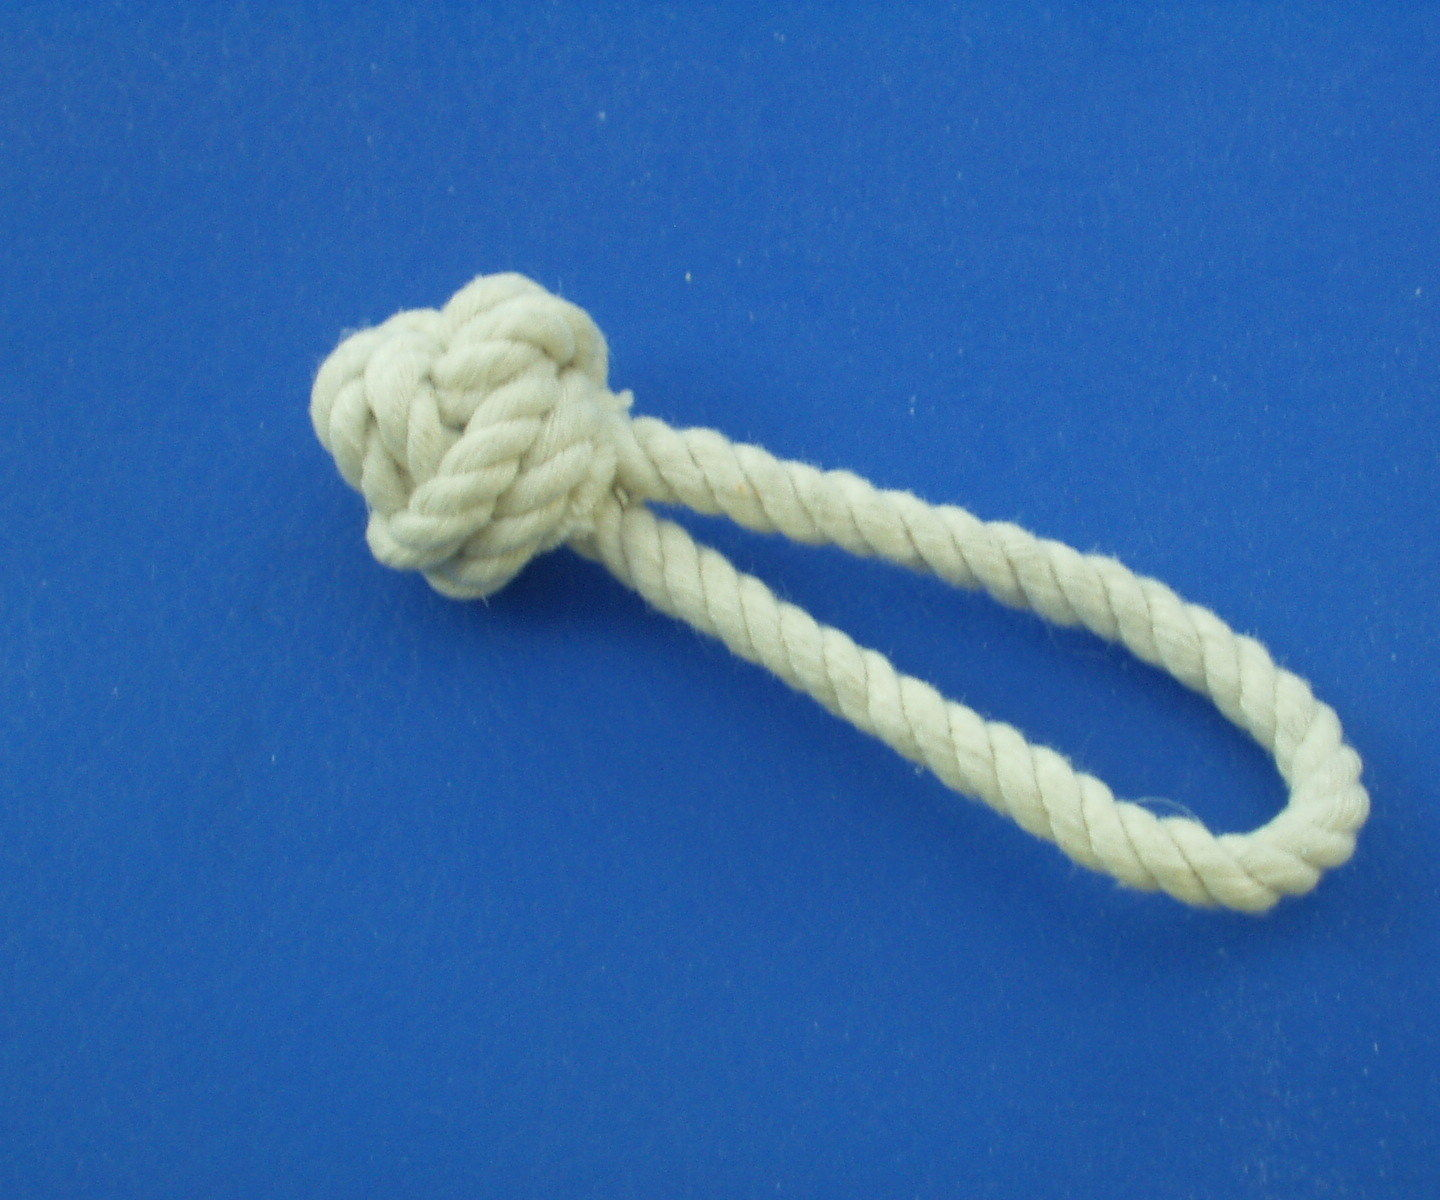 Two Strand Manrope Knot